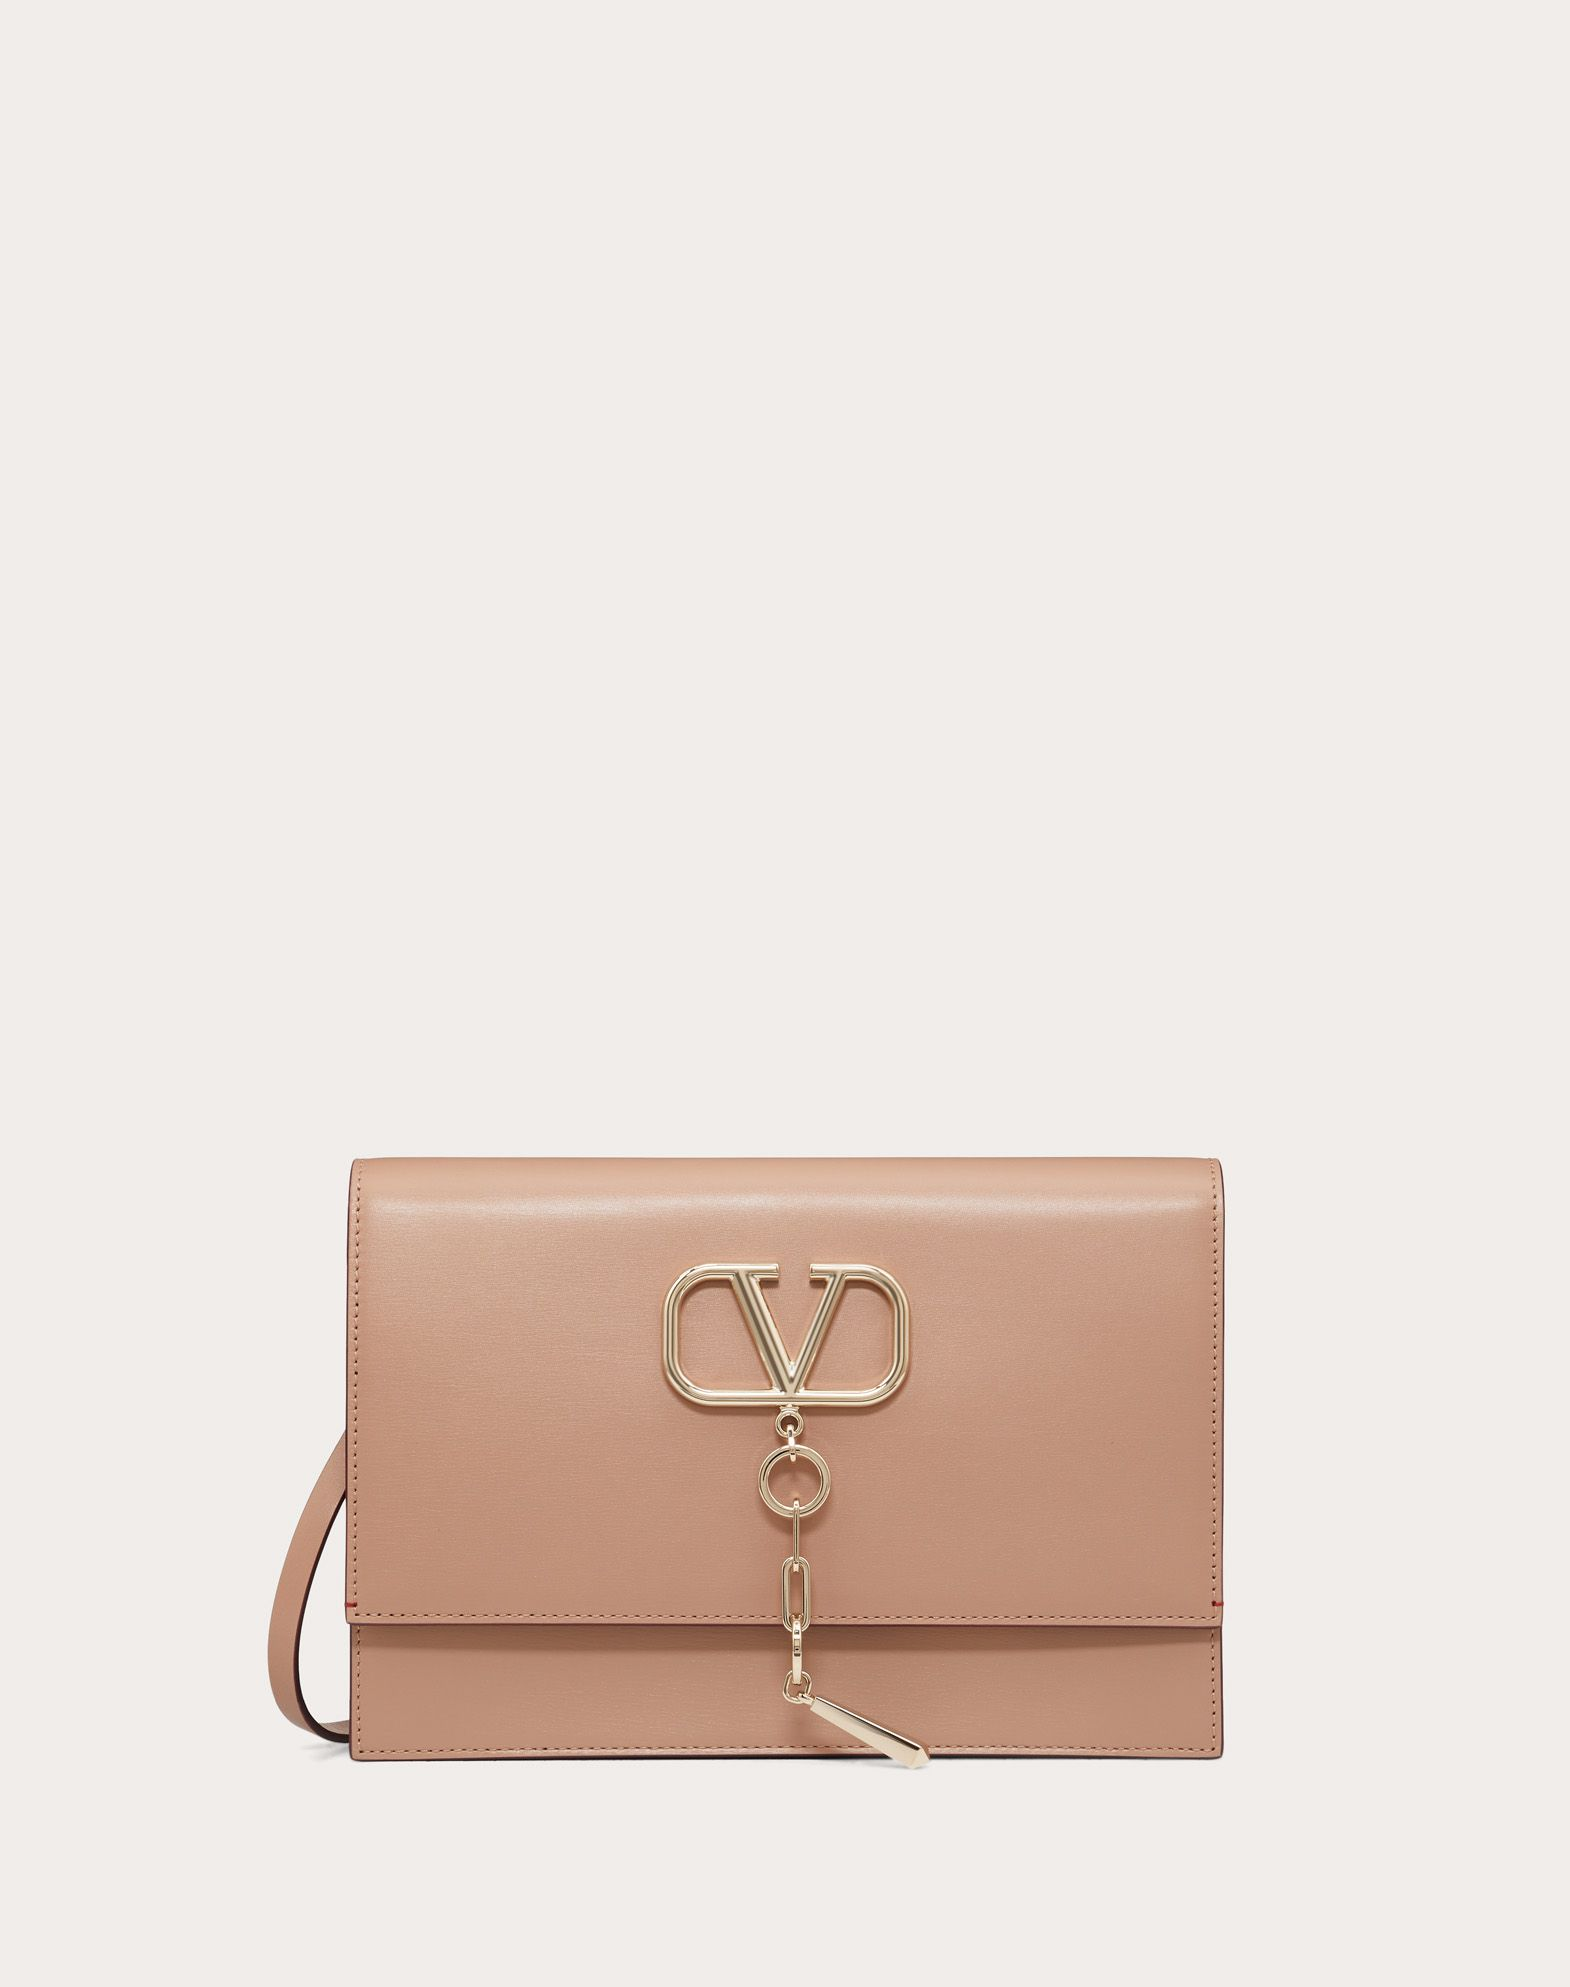 VCASE Smooth Calfskin Crossbody Bag